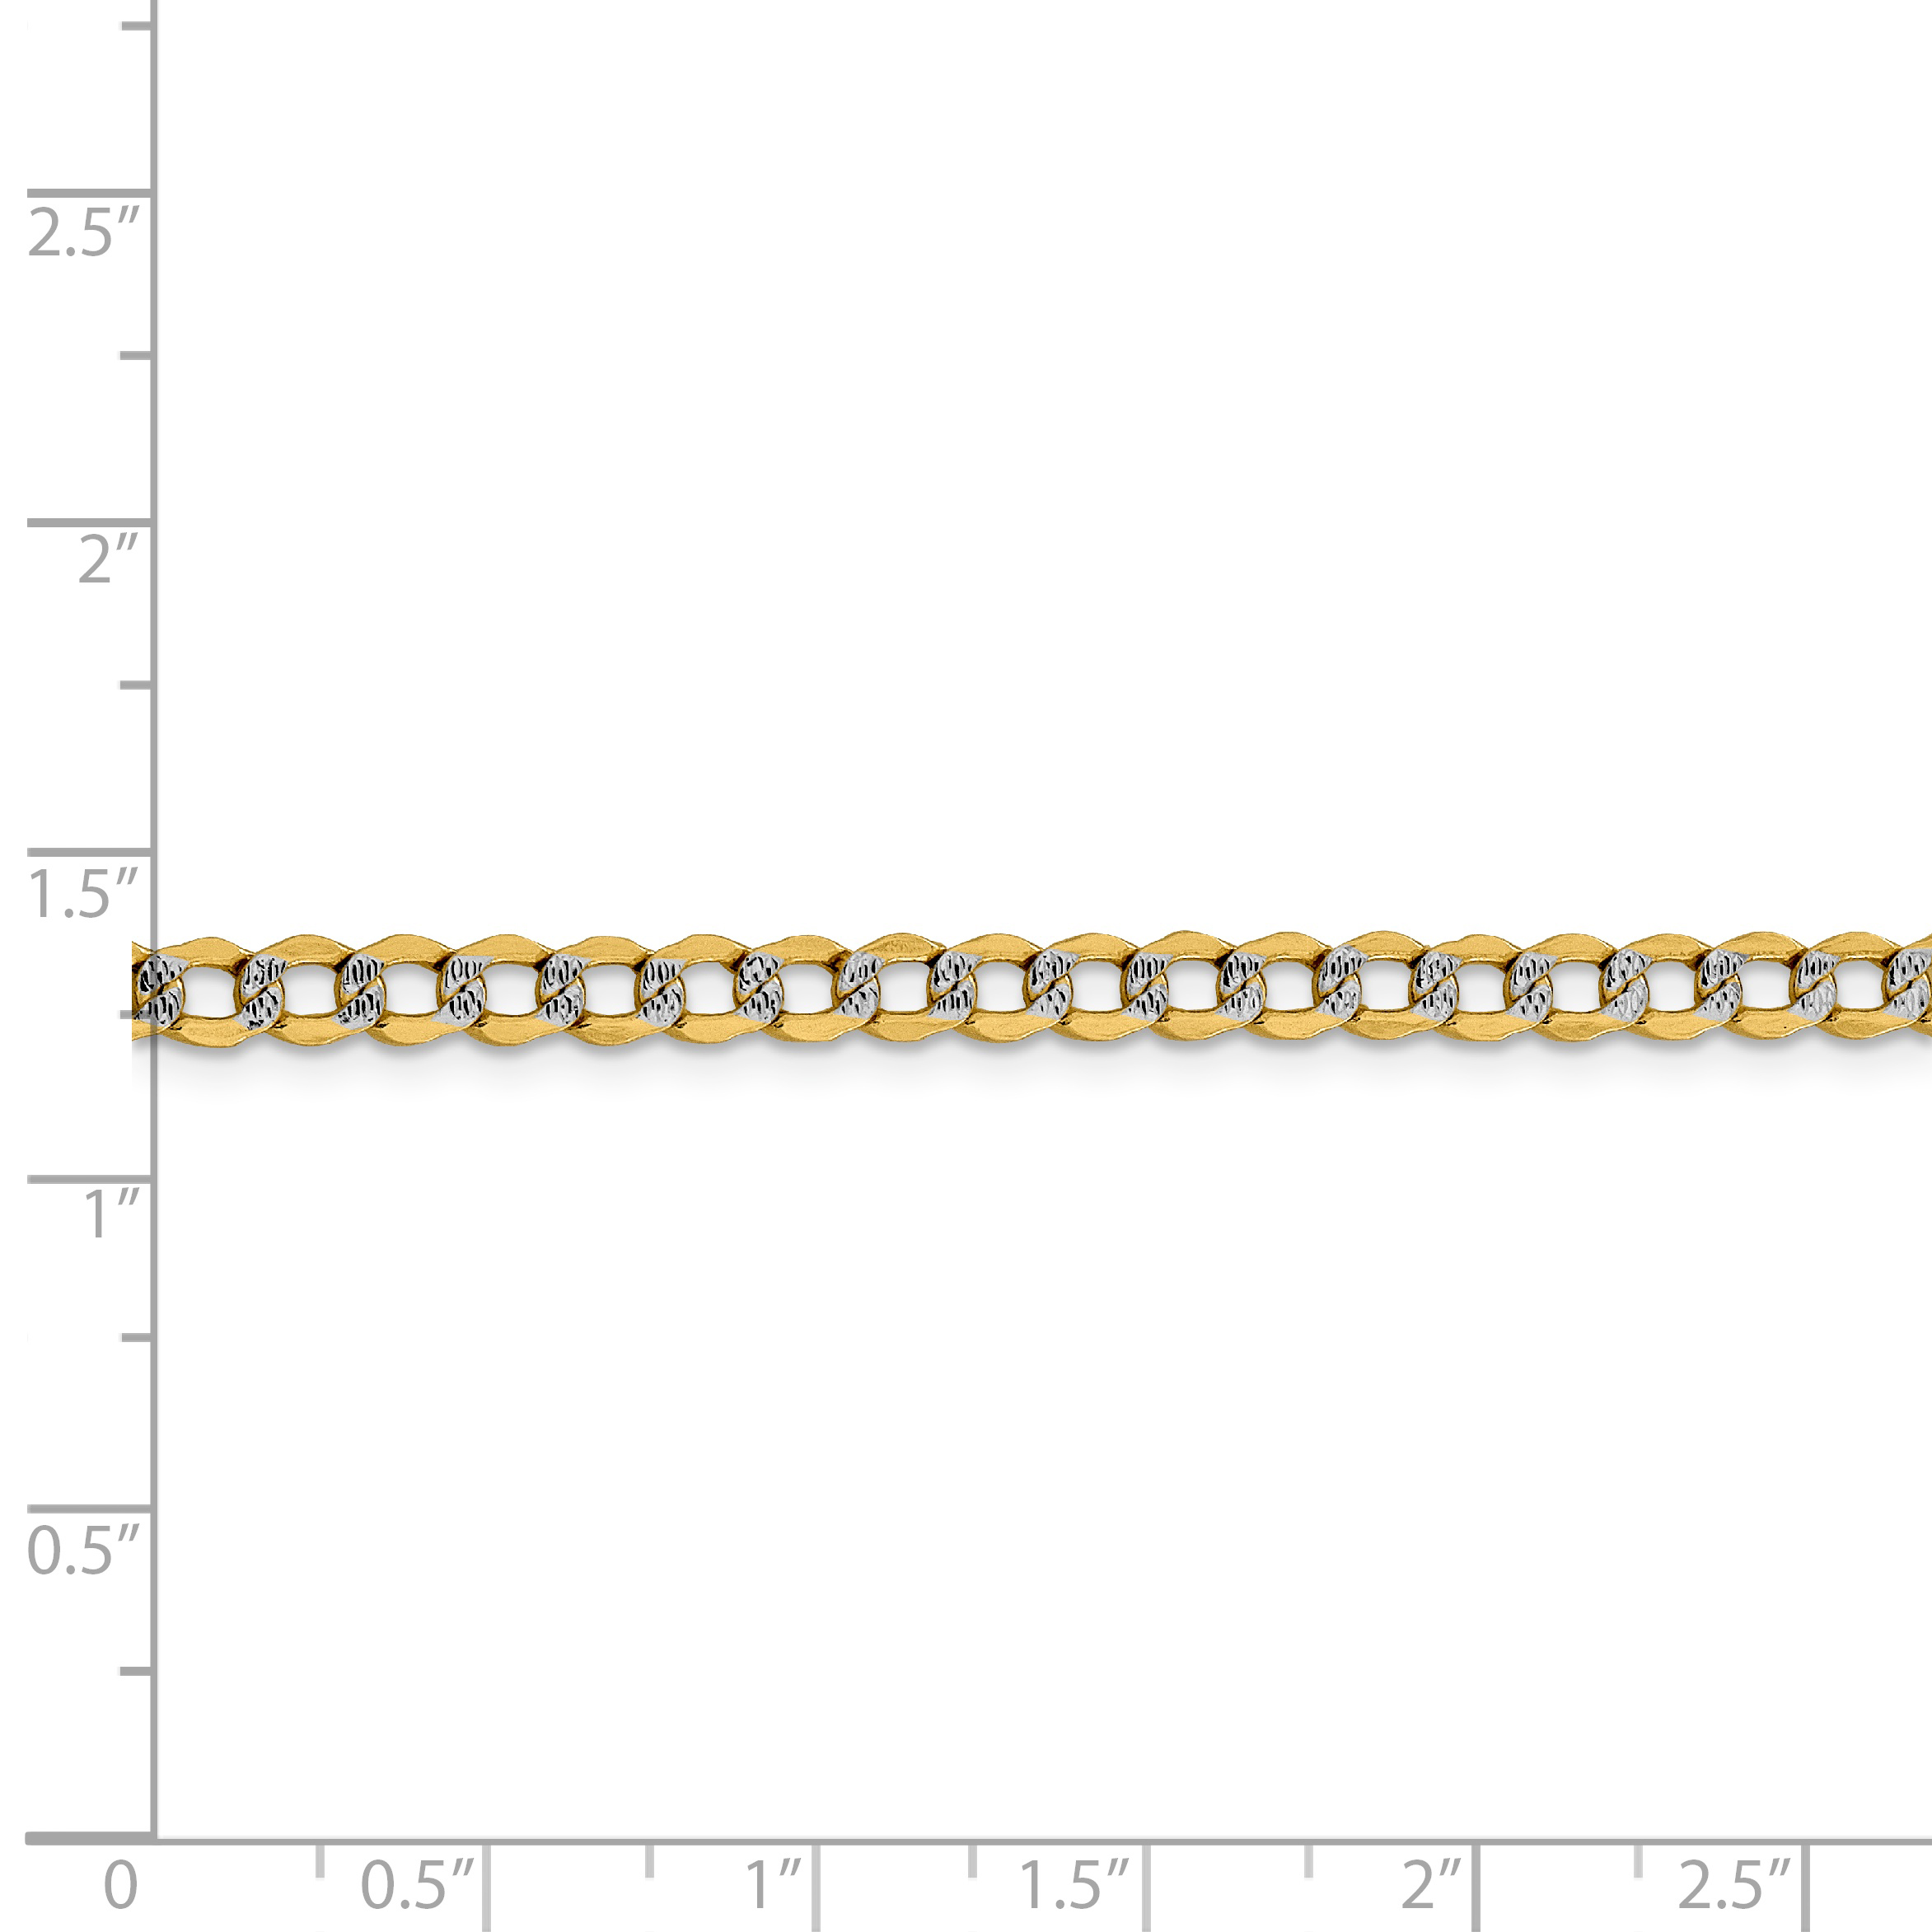 14k Yellow Gold 4.3mm Link Curb Chain Necklace 20 Inch Pendant Charm Pav? Fine Jewelry Gifts For Women For Her - image 1 of 5